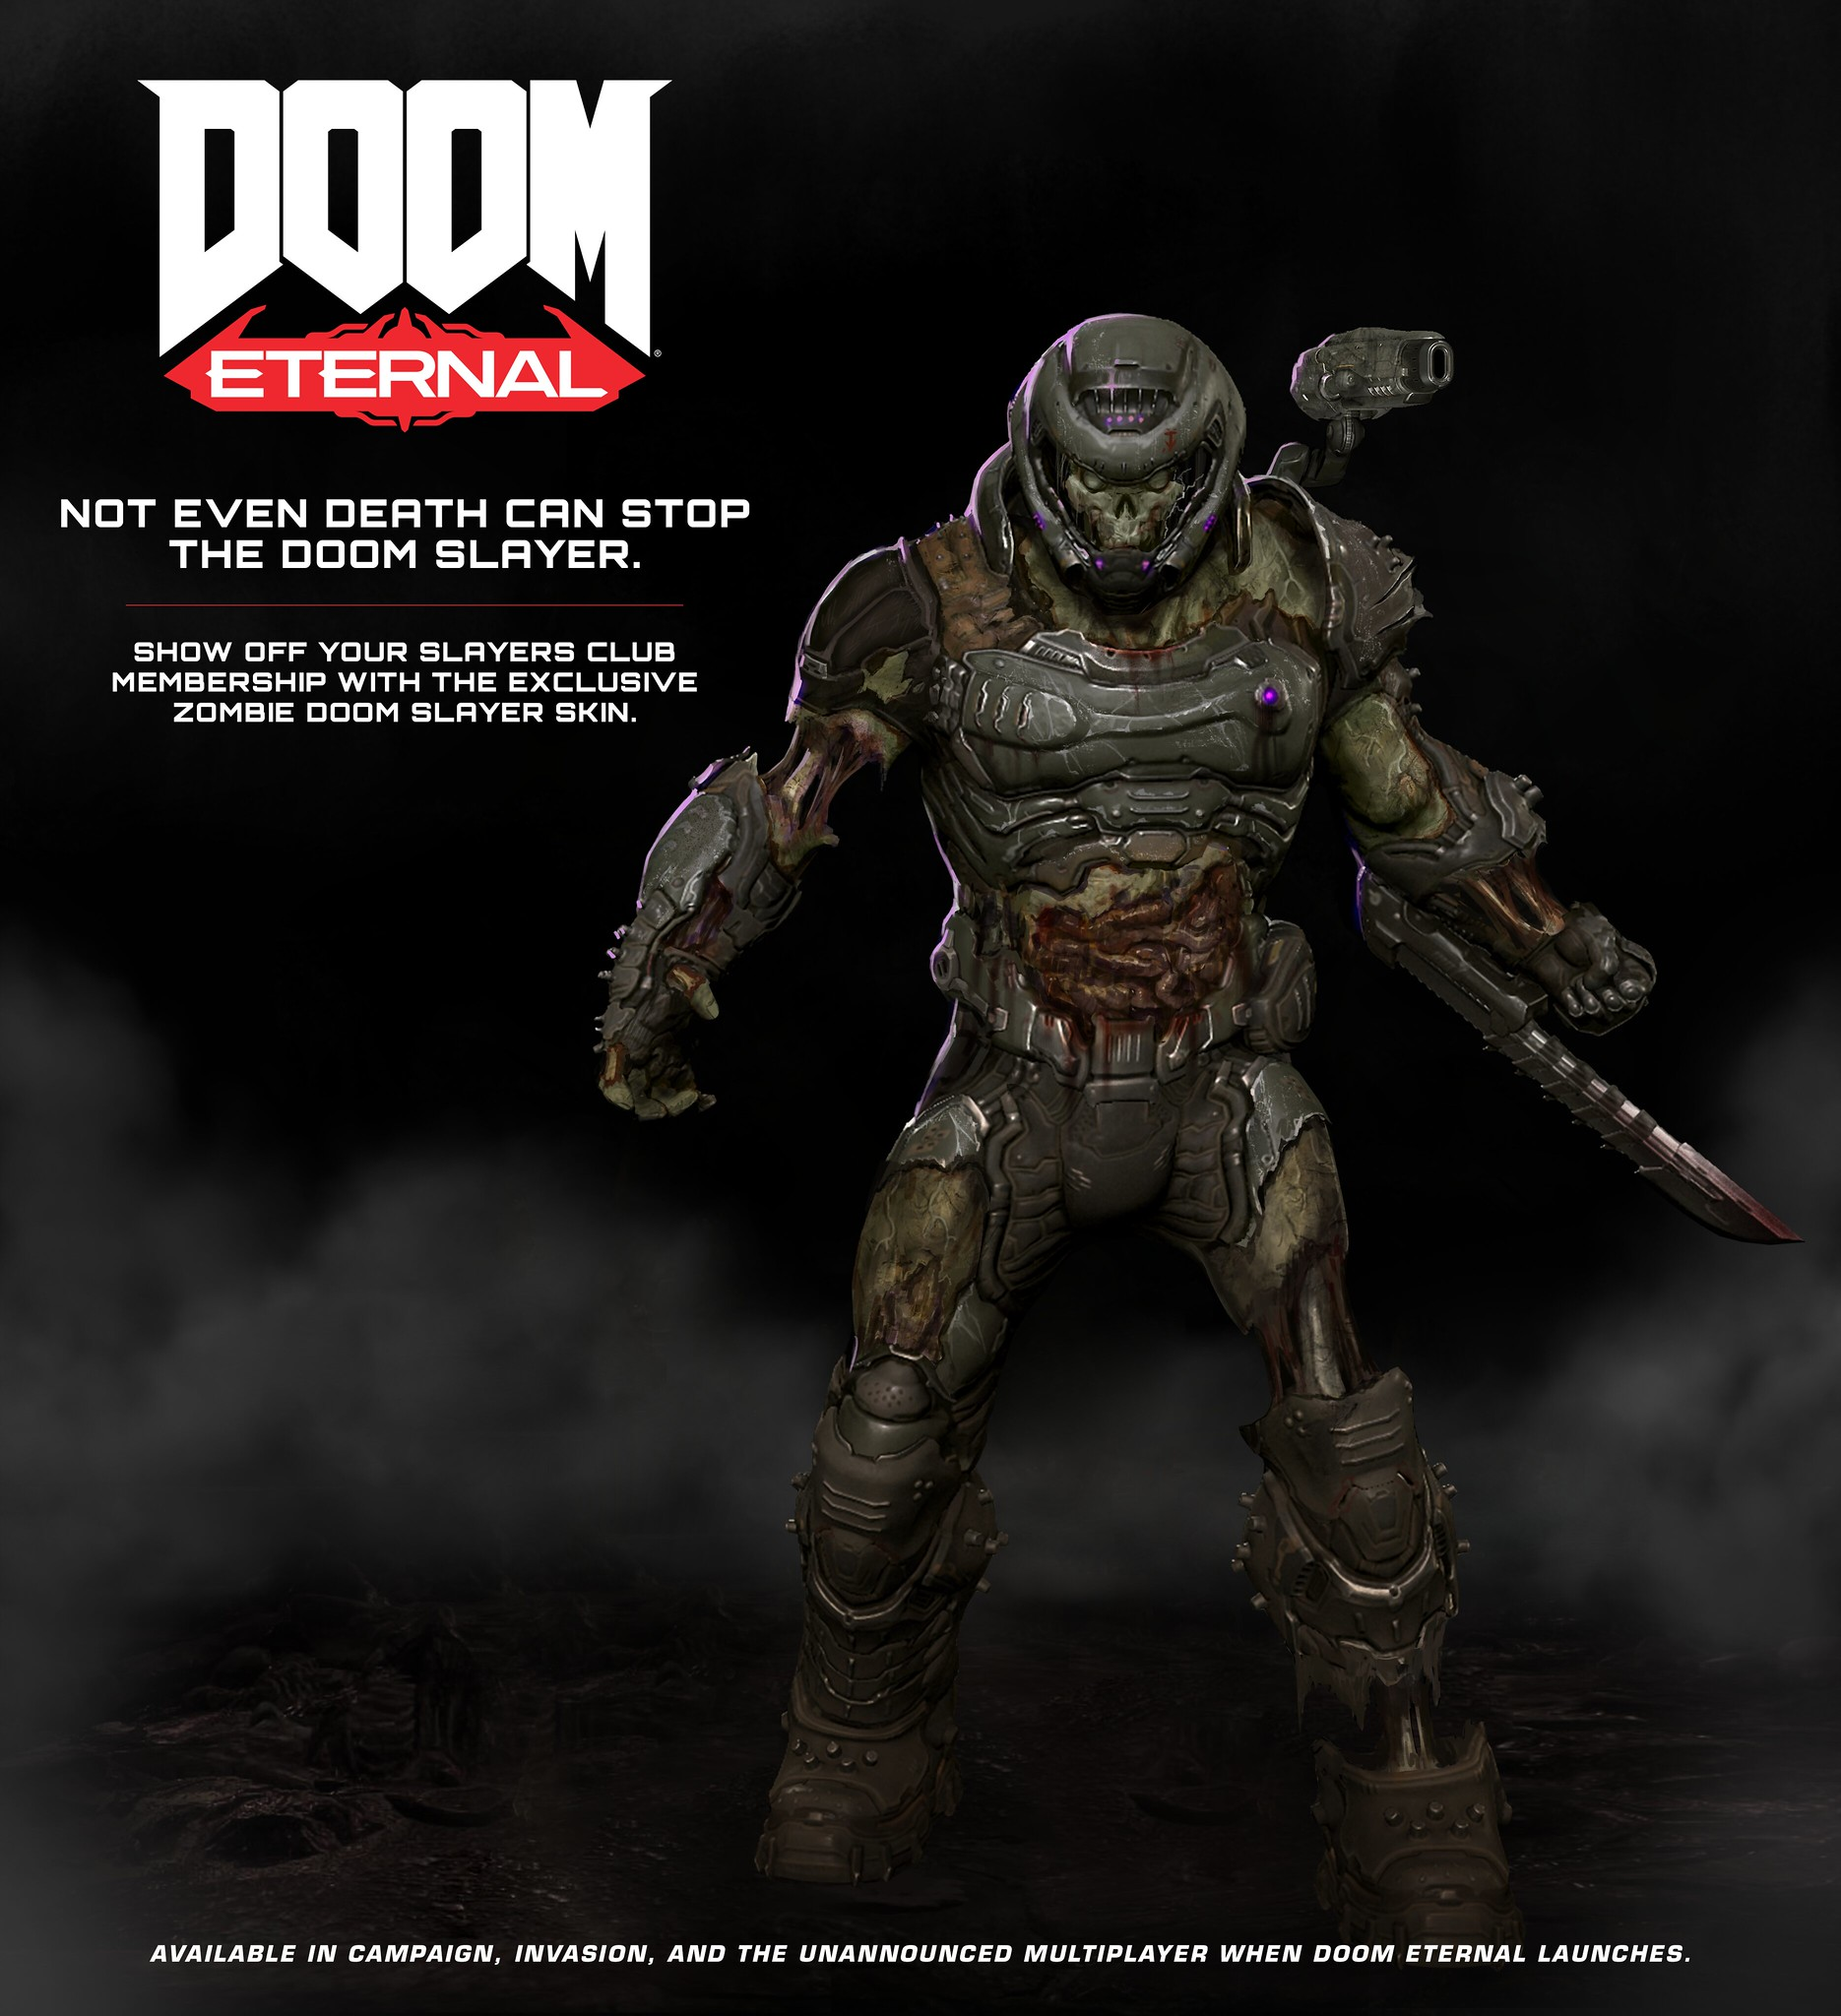 exclusive Zombie DOOM Slayer skin